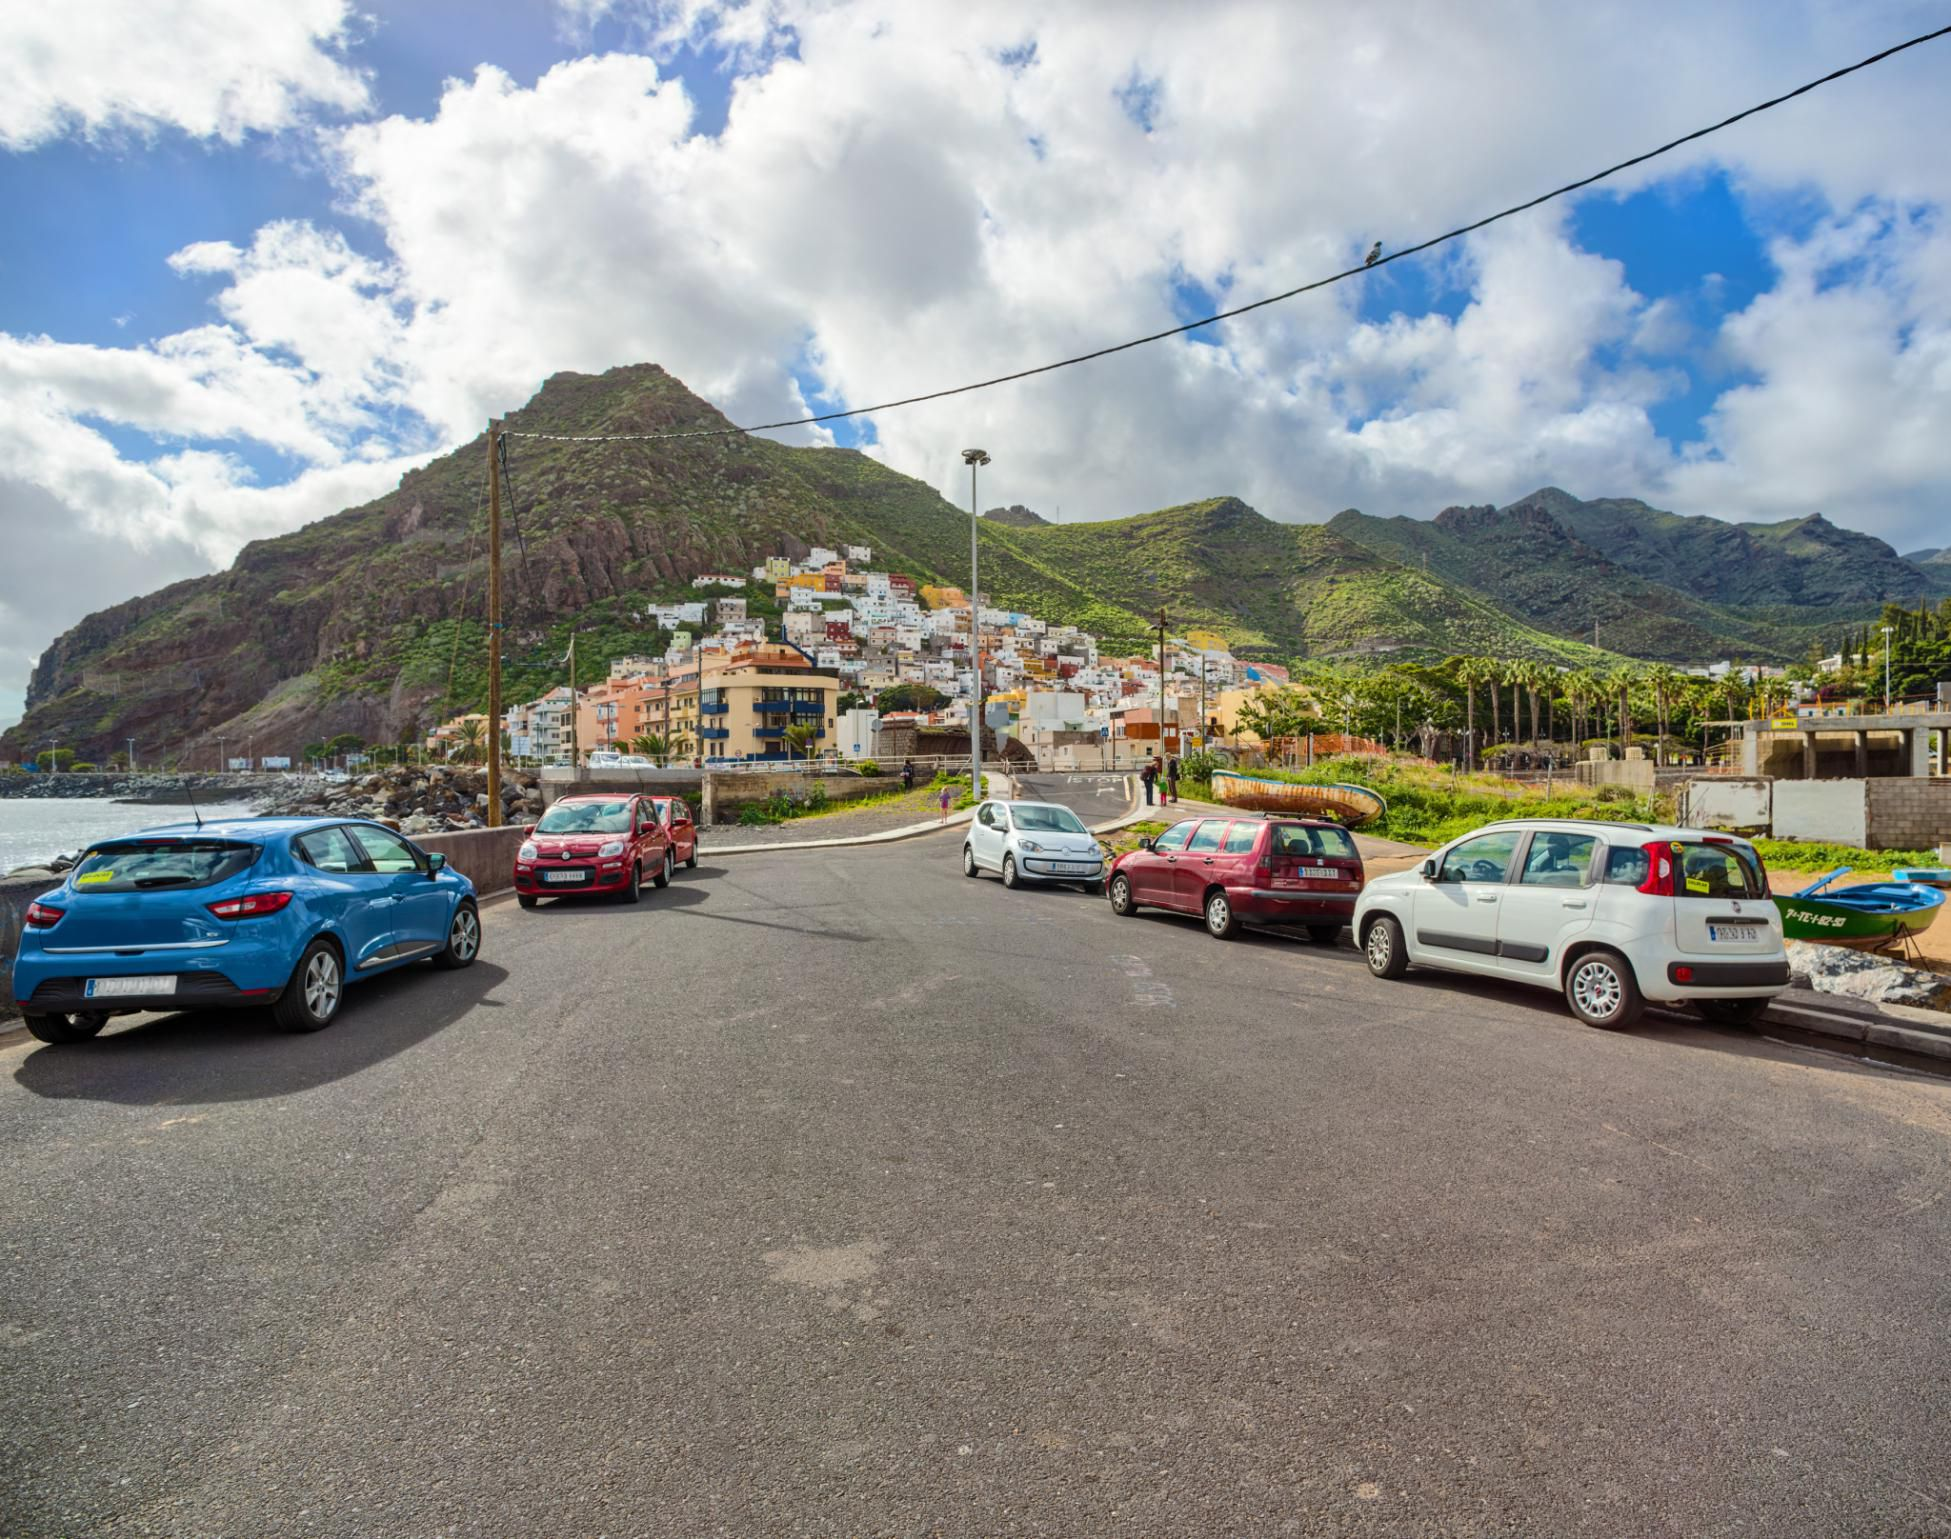 Renting A Car In South Africa Advice